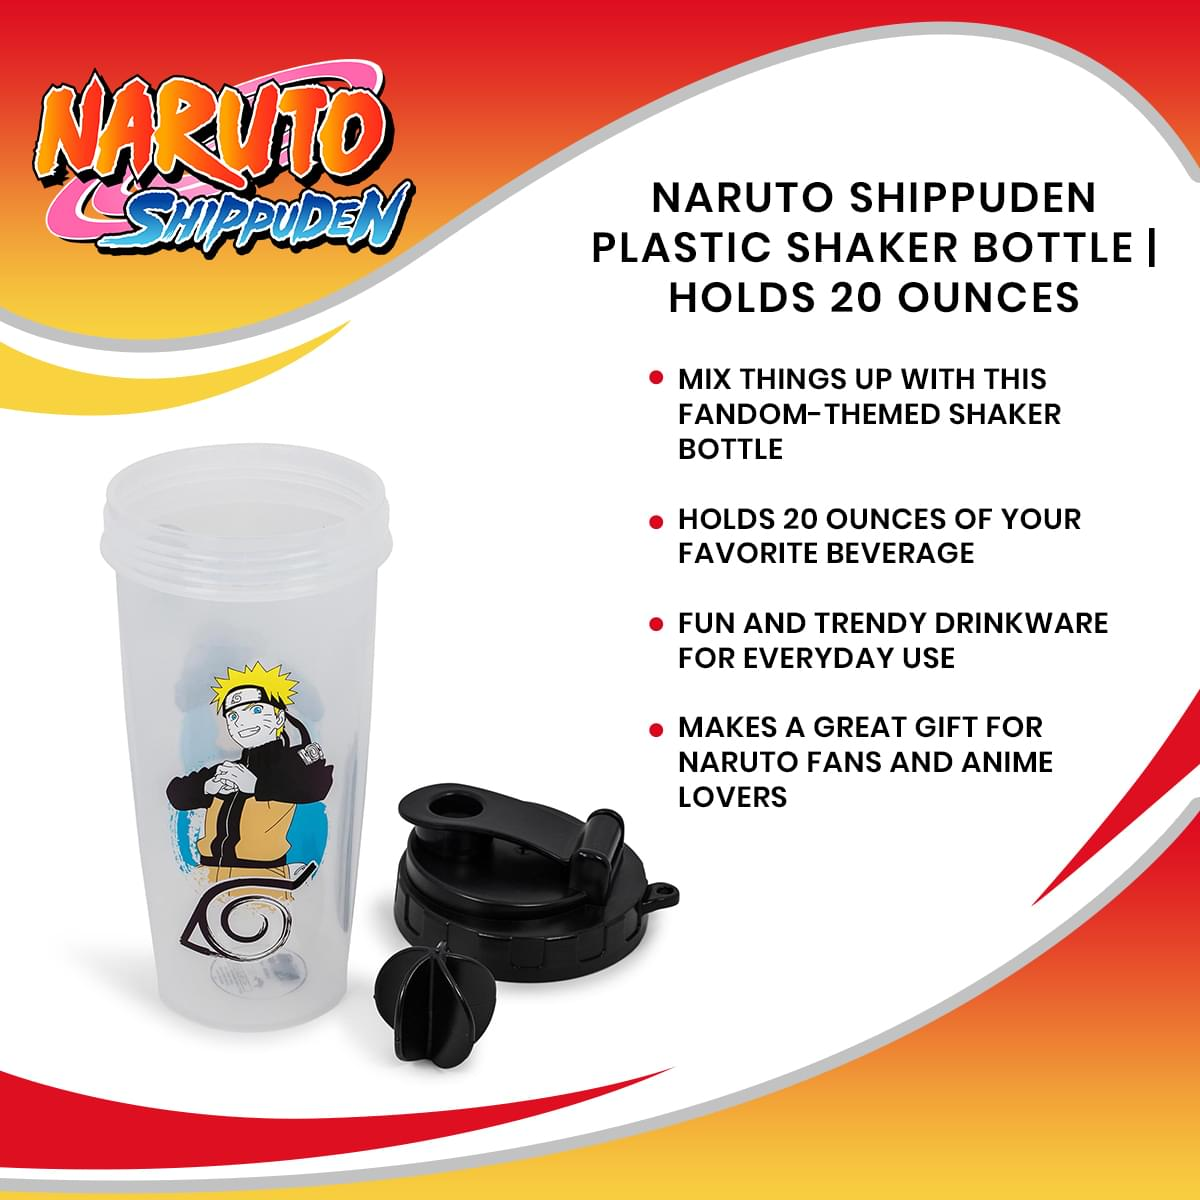 Naruto Shippuden Plastic Shaker Bottle | Holds 20 Ounces